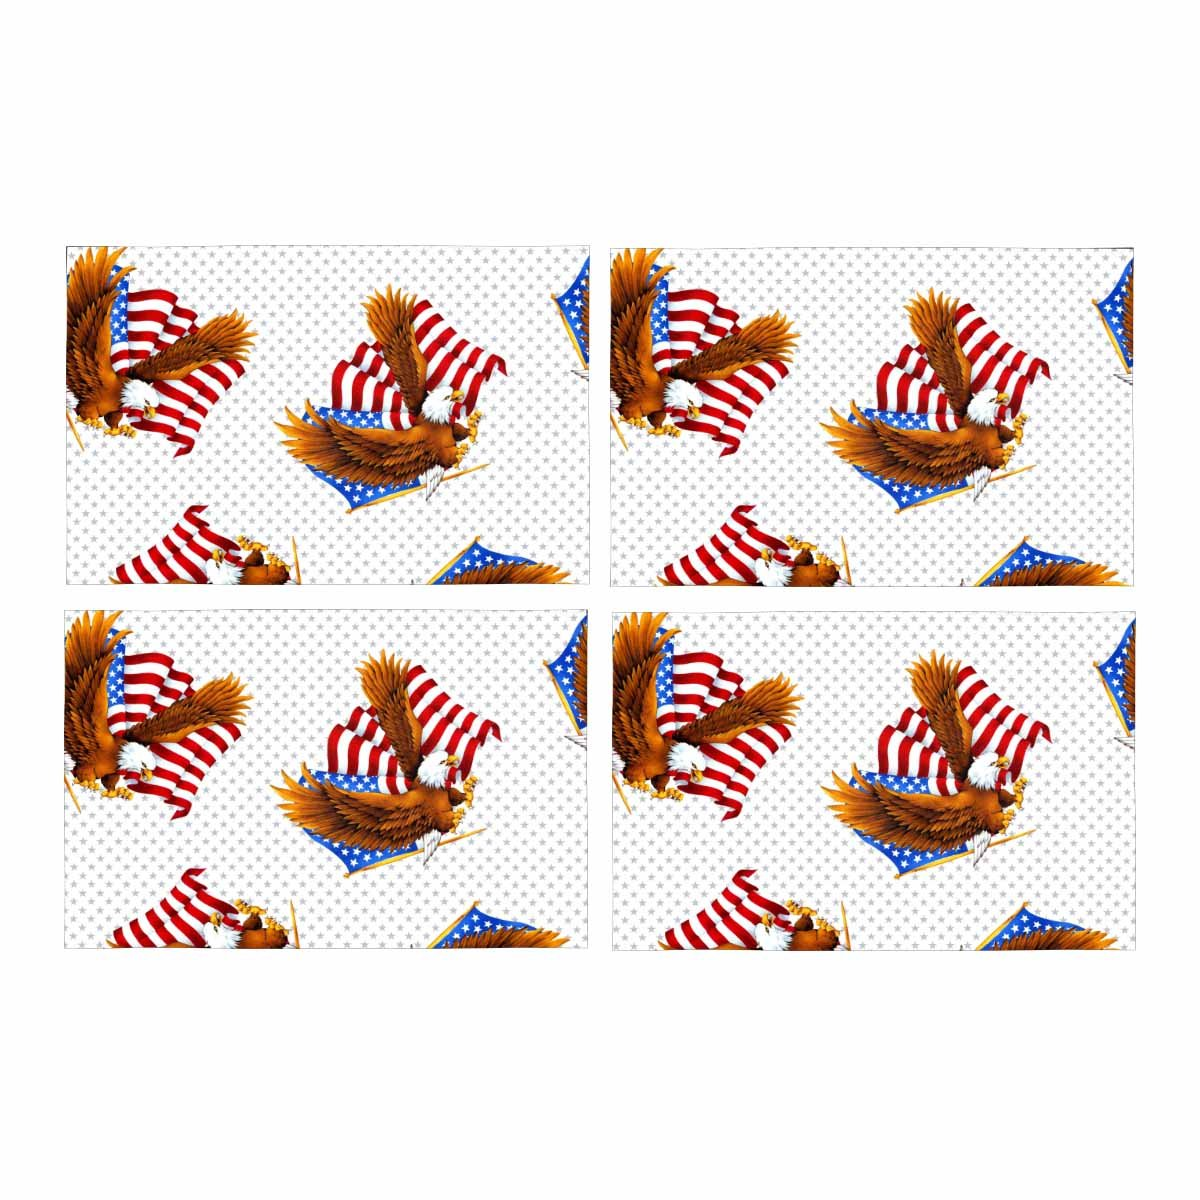 InterestPrint Eagle Stars Stripes America Placemat Place Mat Set of 4, Table Place Mats for Kitchen Dining Table Restaurant Home Decor 12''x18''